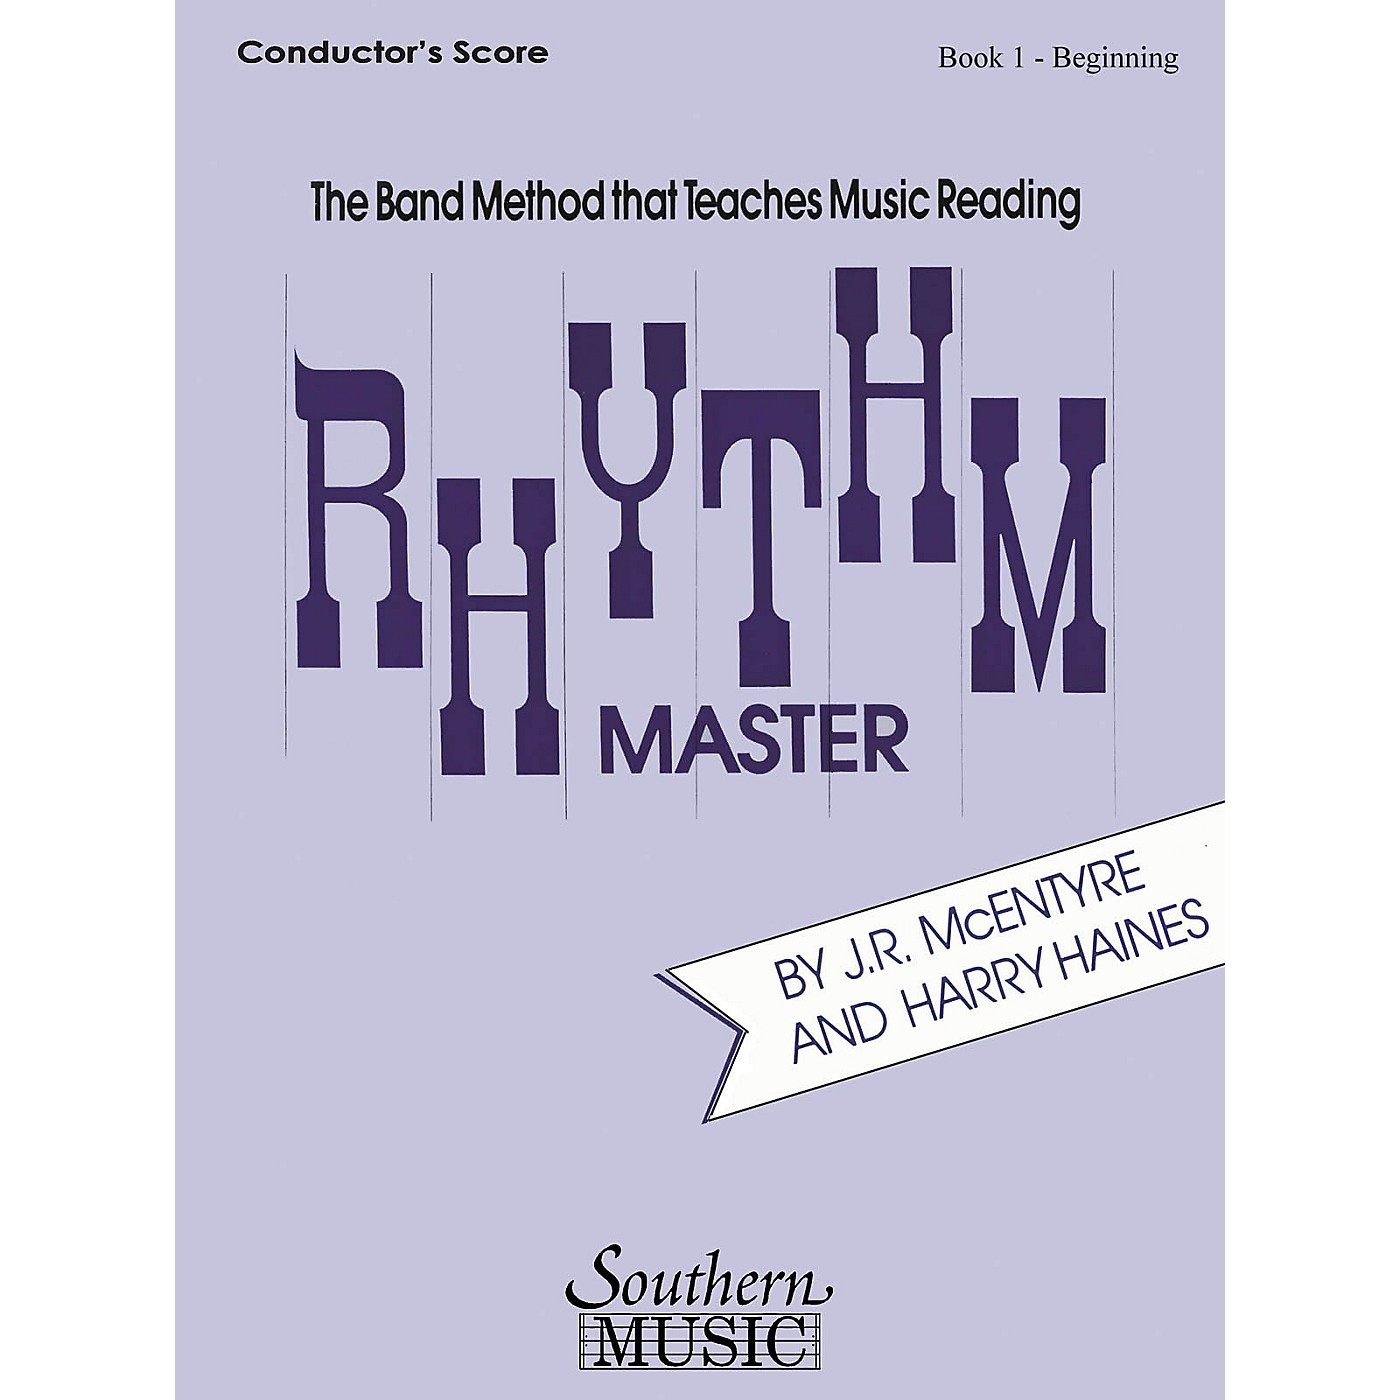 Southern Rhythm Master - Book 1 (Beginner) (Tuba in C (B.C.)) Southern Music Series Composed by Harry Haines thumbnail